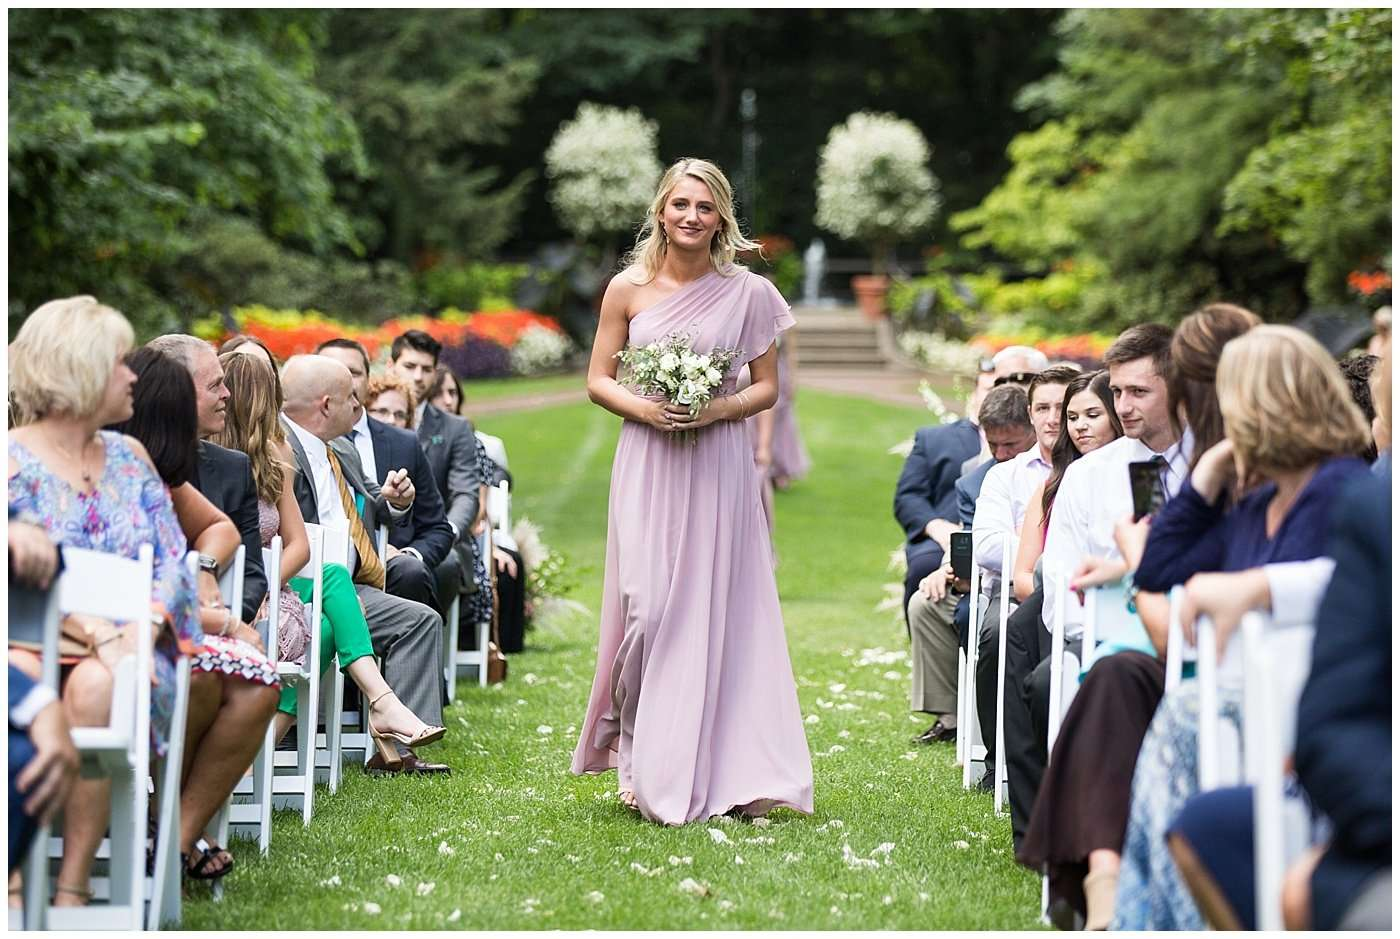 Jake & Abbie | A Swoon-Worthy Wedding at Breathtaking Garden Estate 82